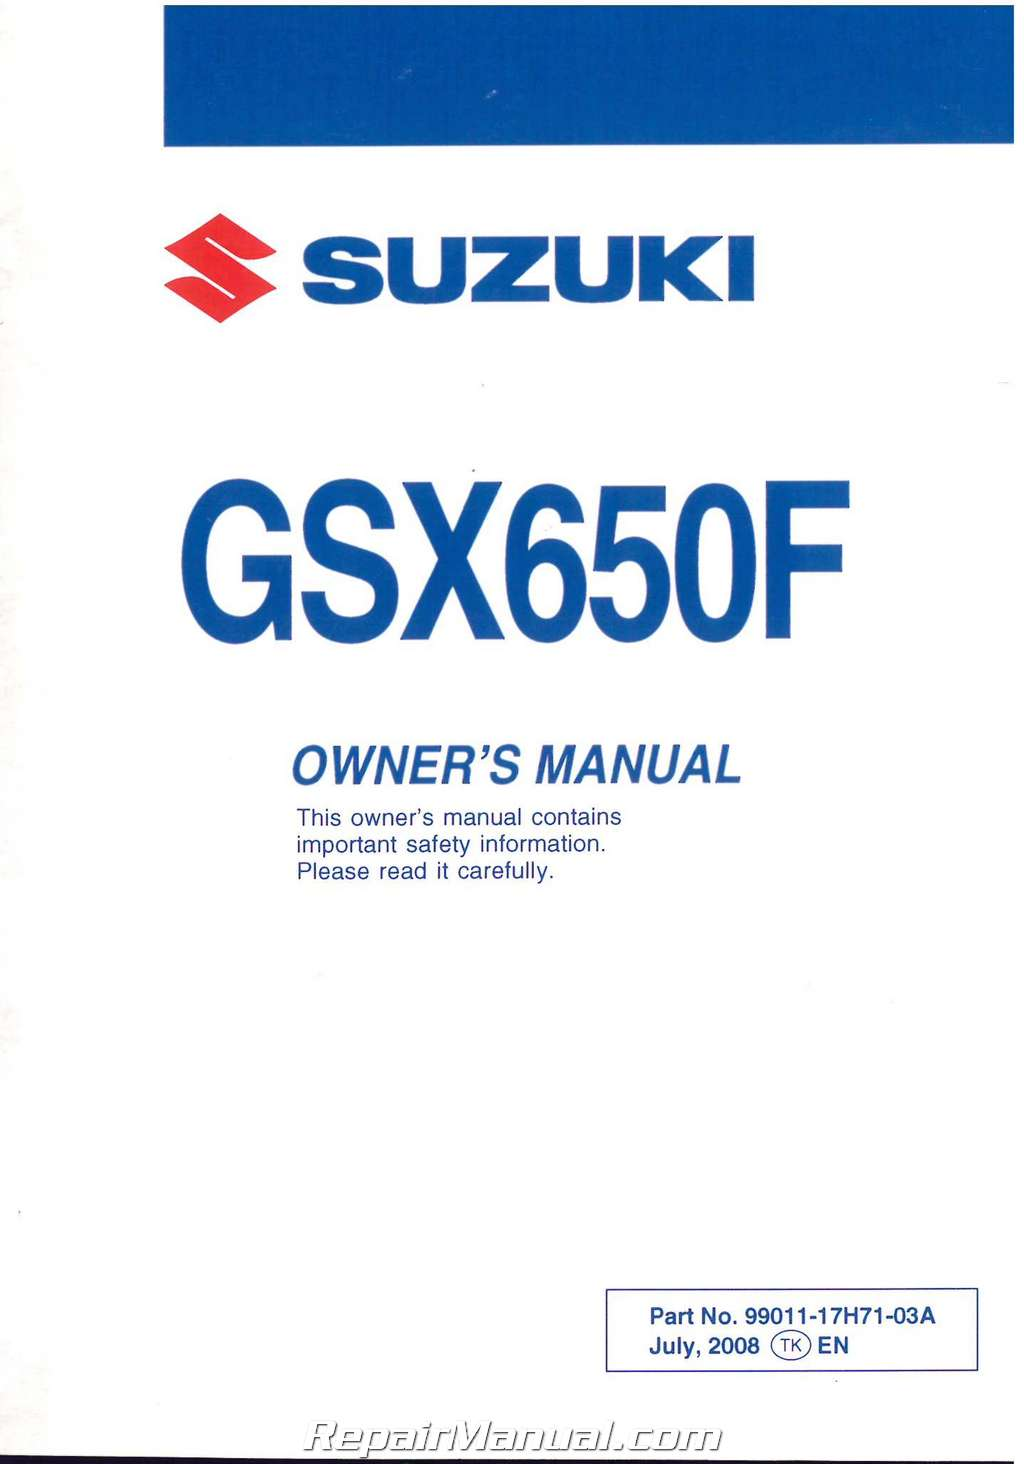 2009 suzuki gsx650f motorcycle owners manual rh repairmanual com Suzuki Quadmaster 50 Manual suzuki motorcycle owners manual download